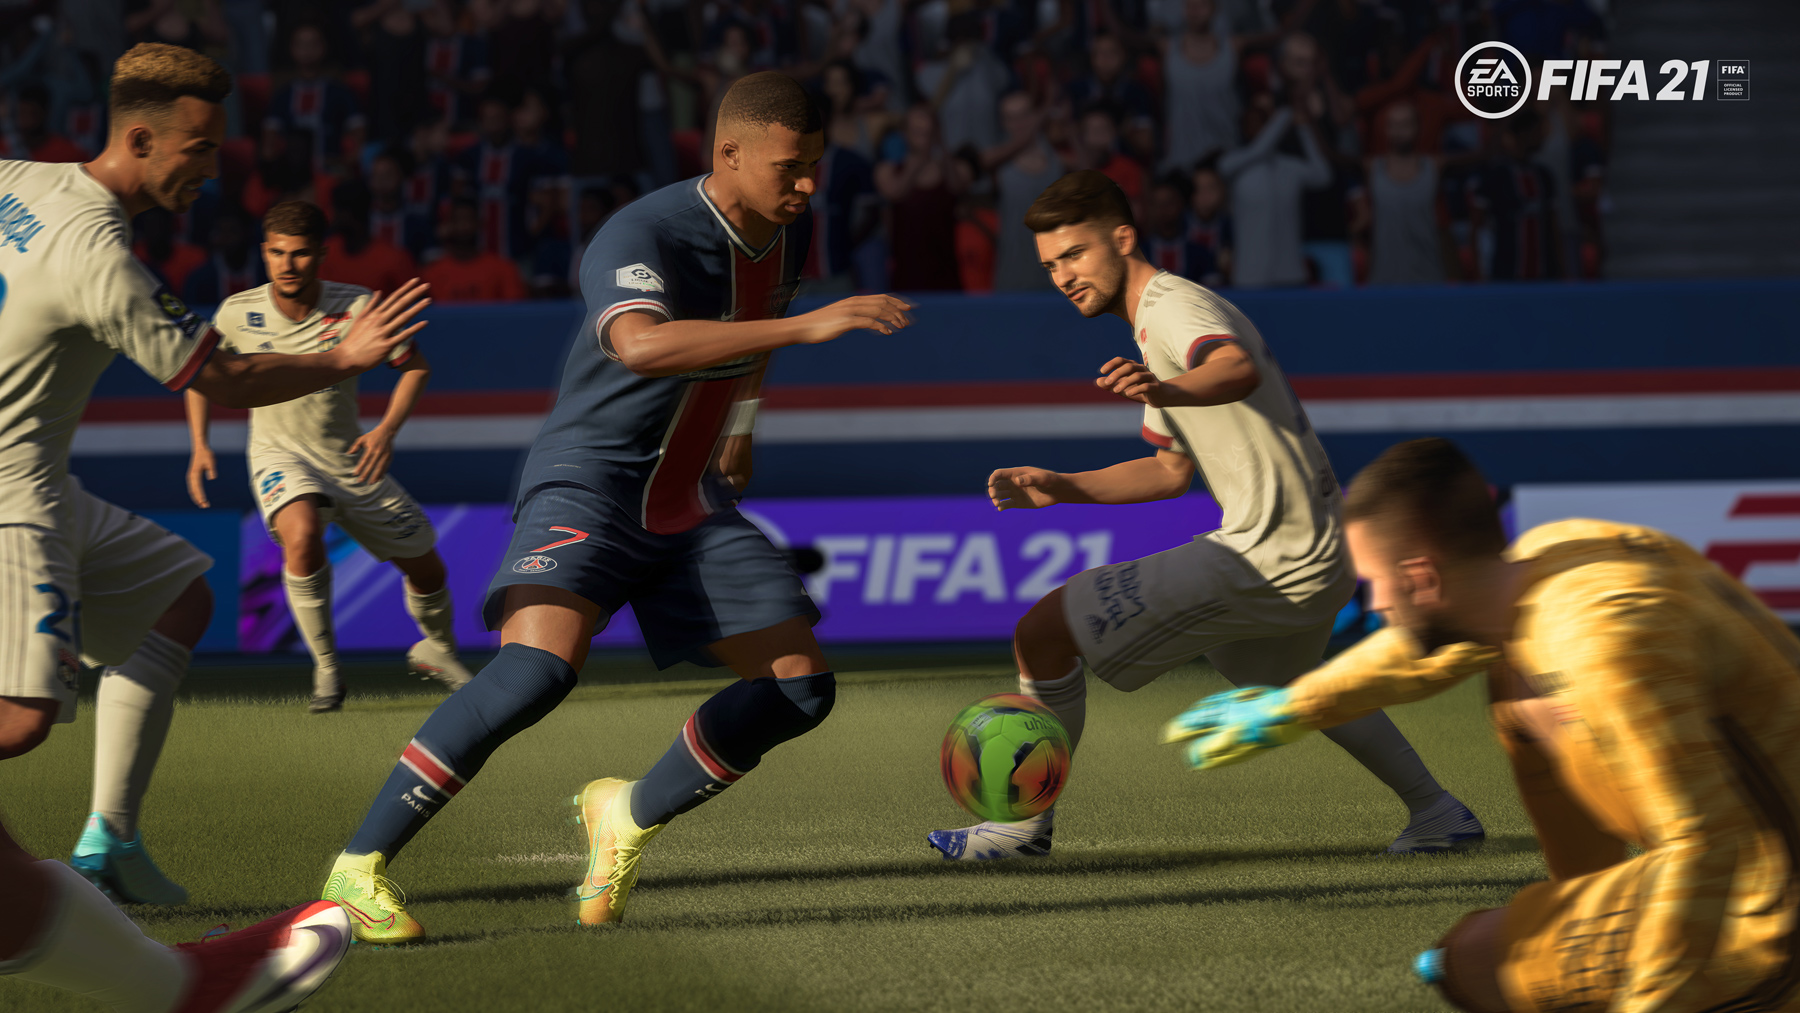 fifa 21 screenshot release date